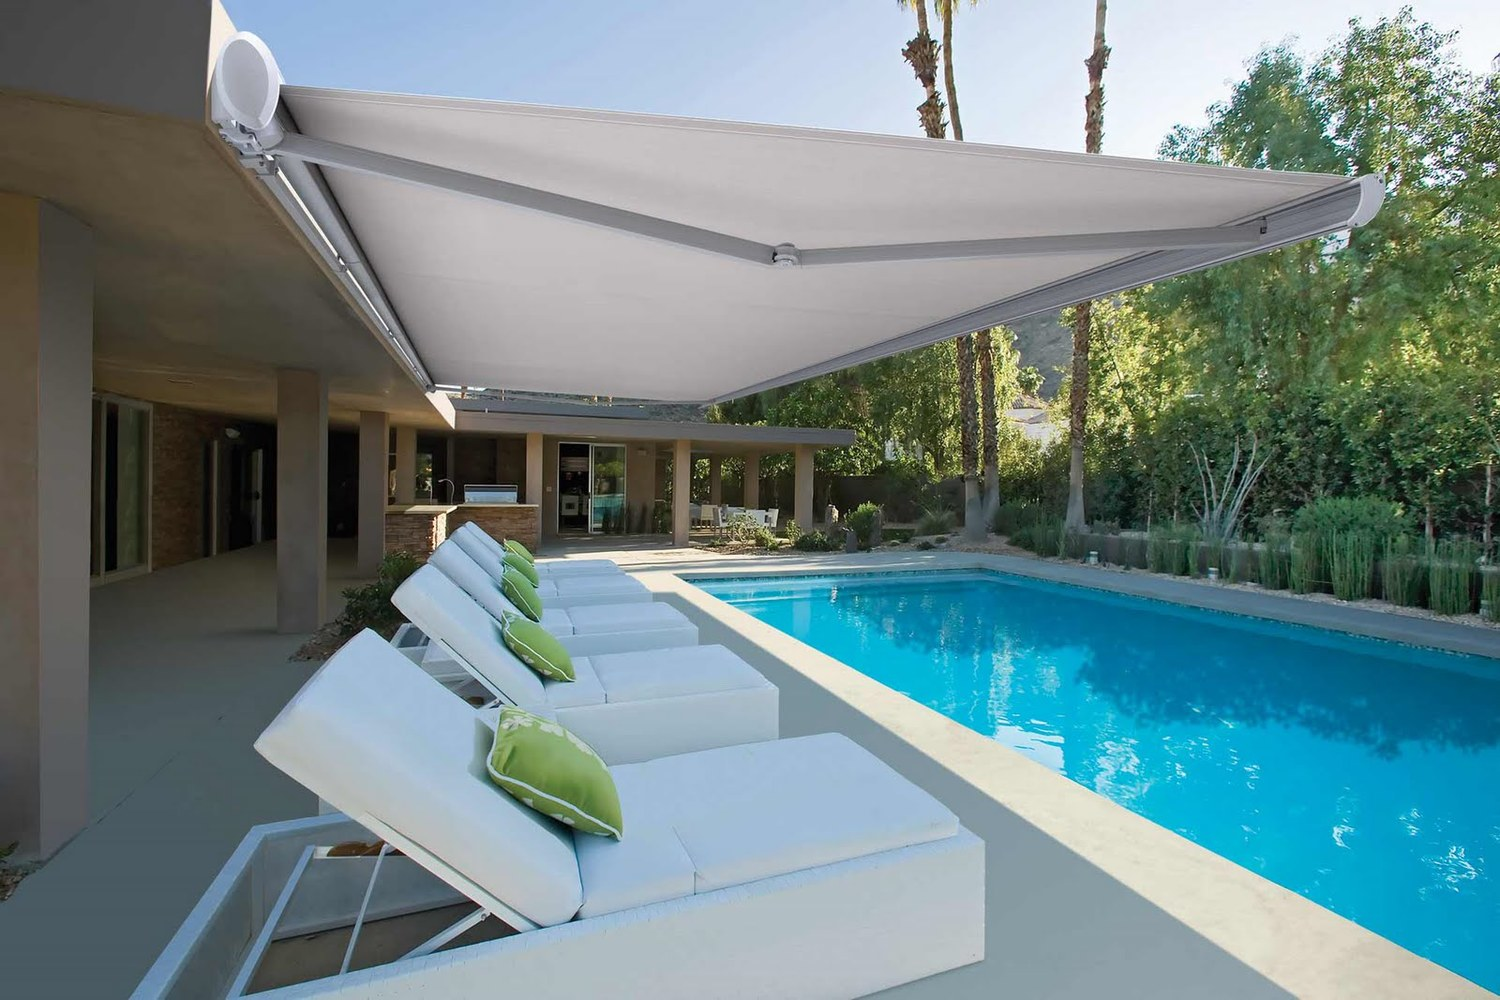 shoreline awning & patio, inc.-retractable awnings